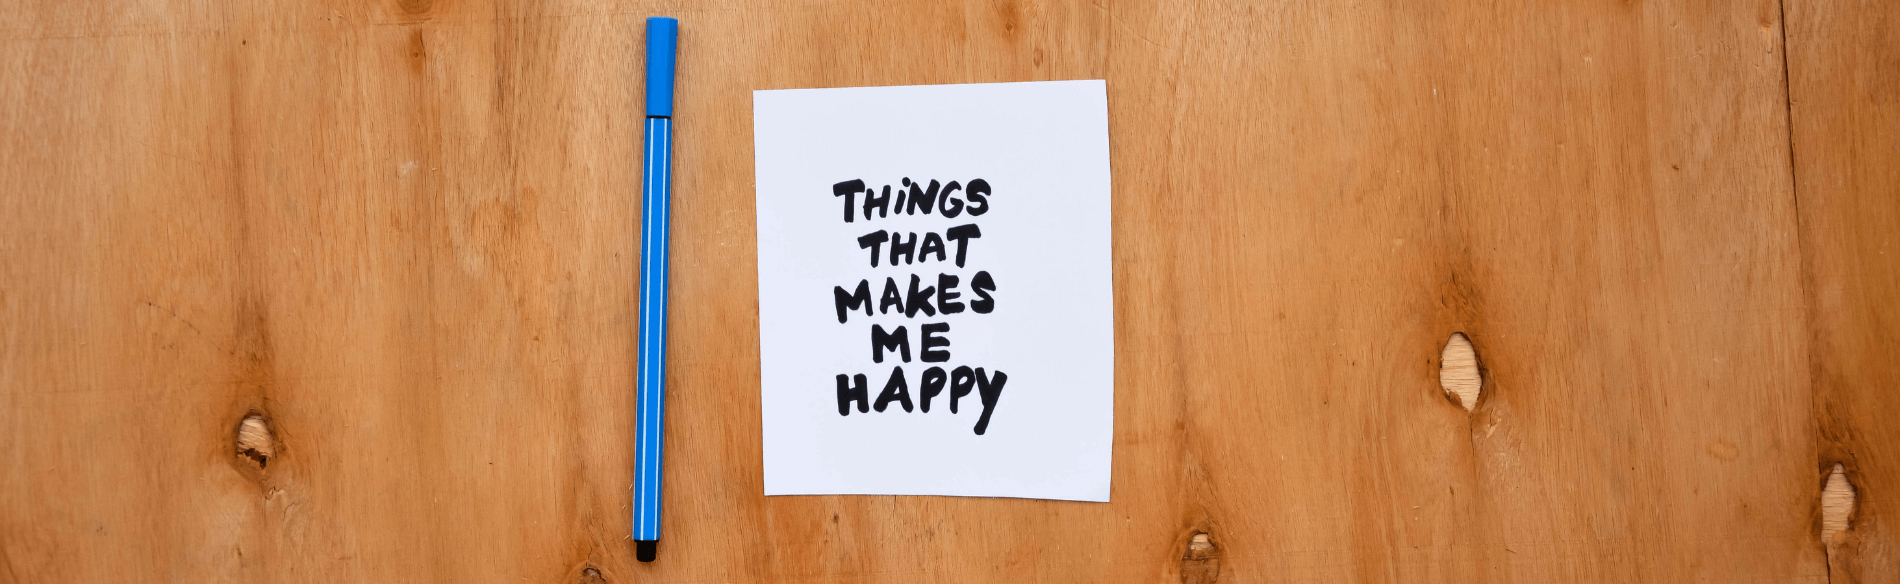 Post-it note to remind you to smile more